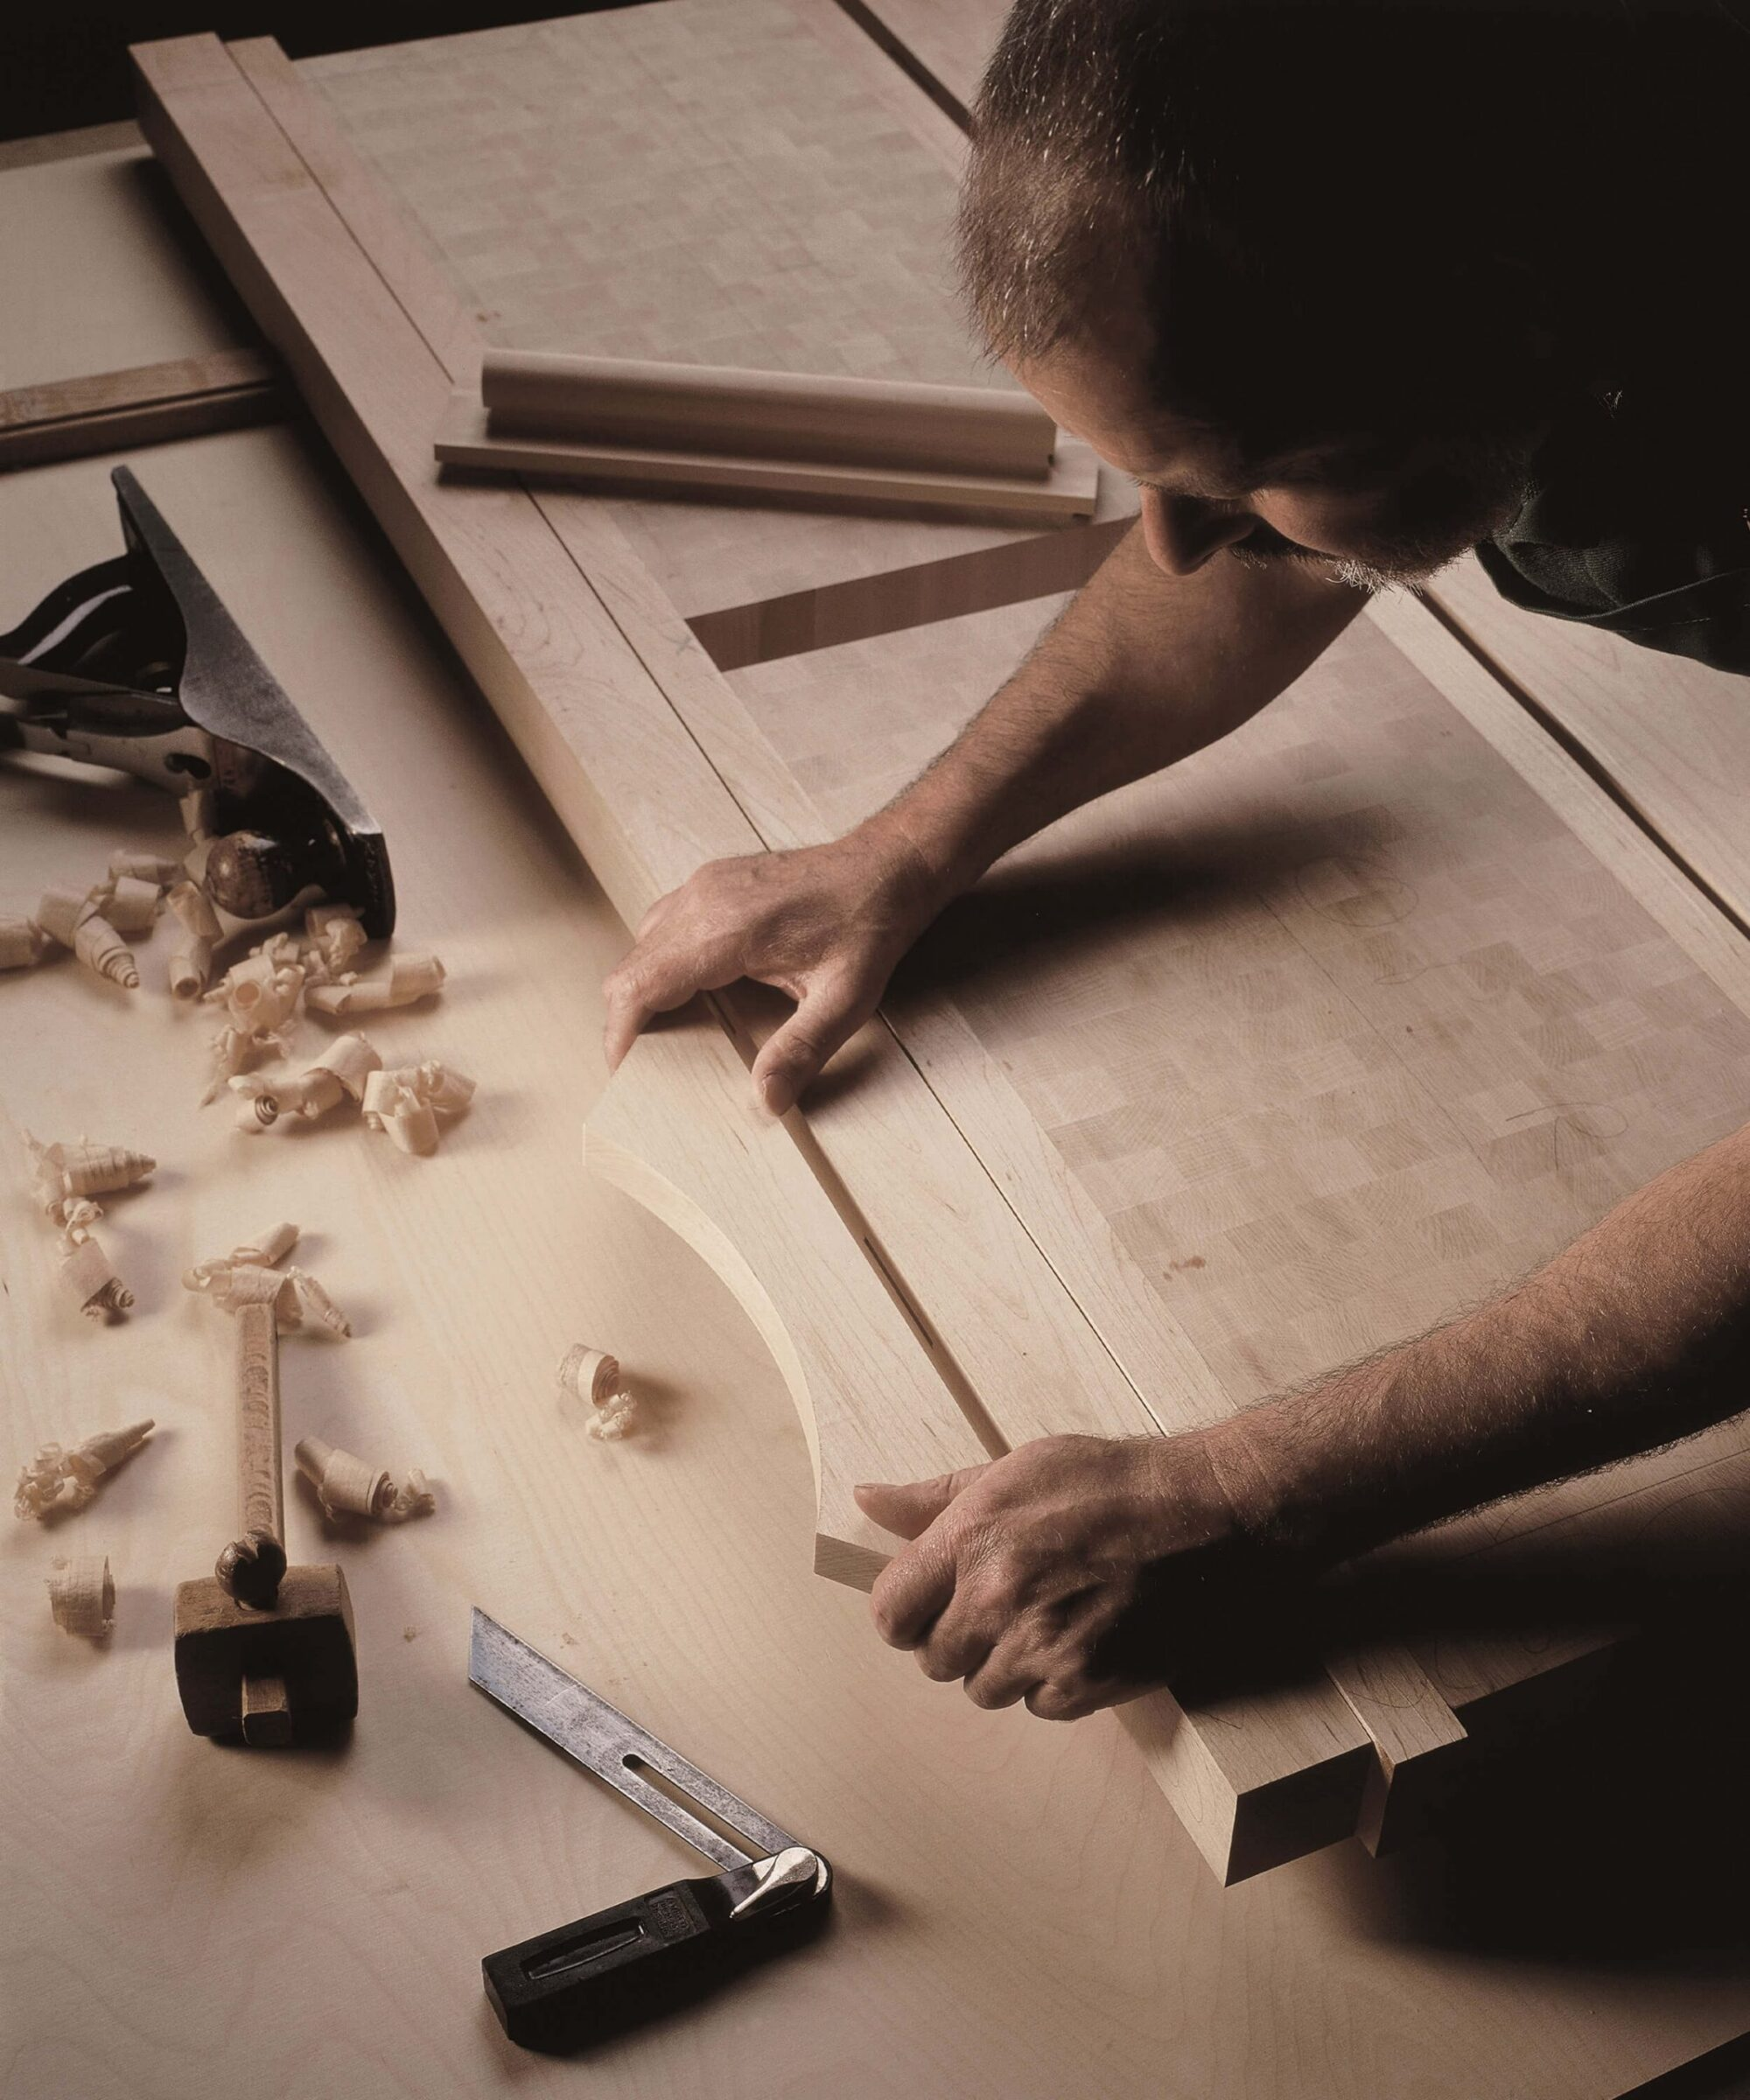 a handmade kitchen by Smallbone being crafted by a artisan craftsman